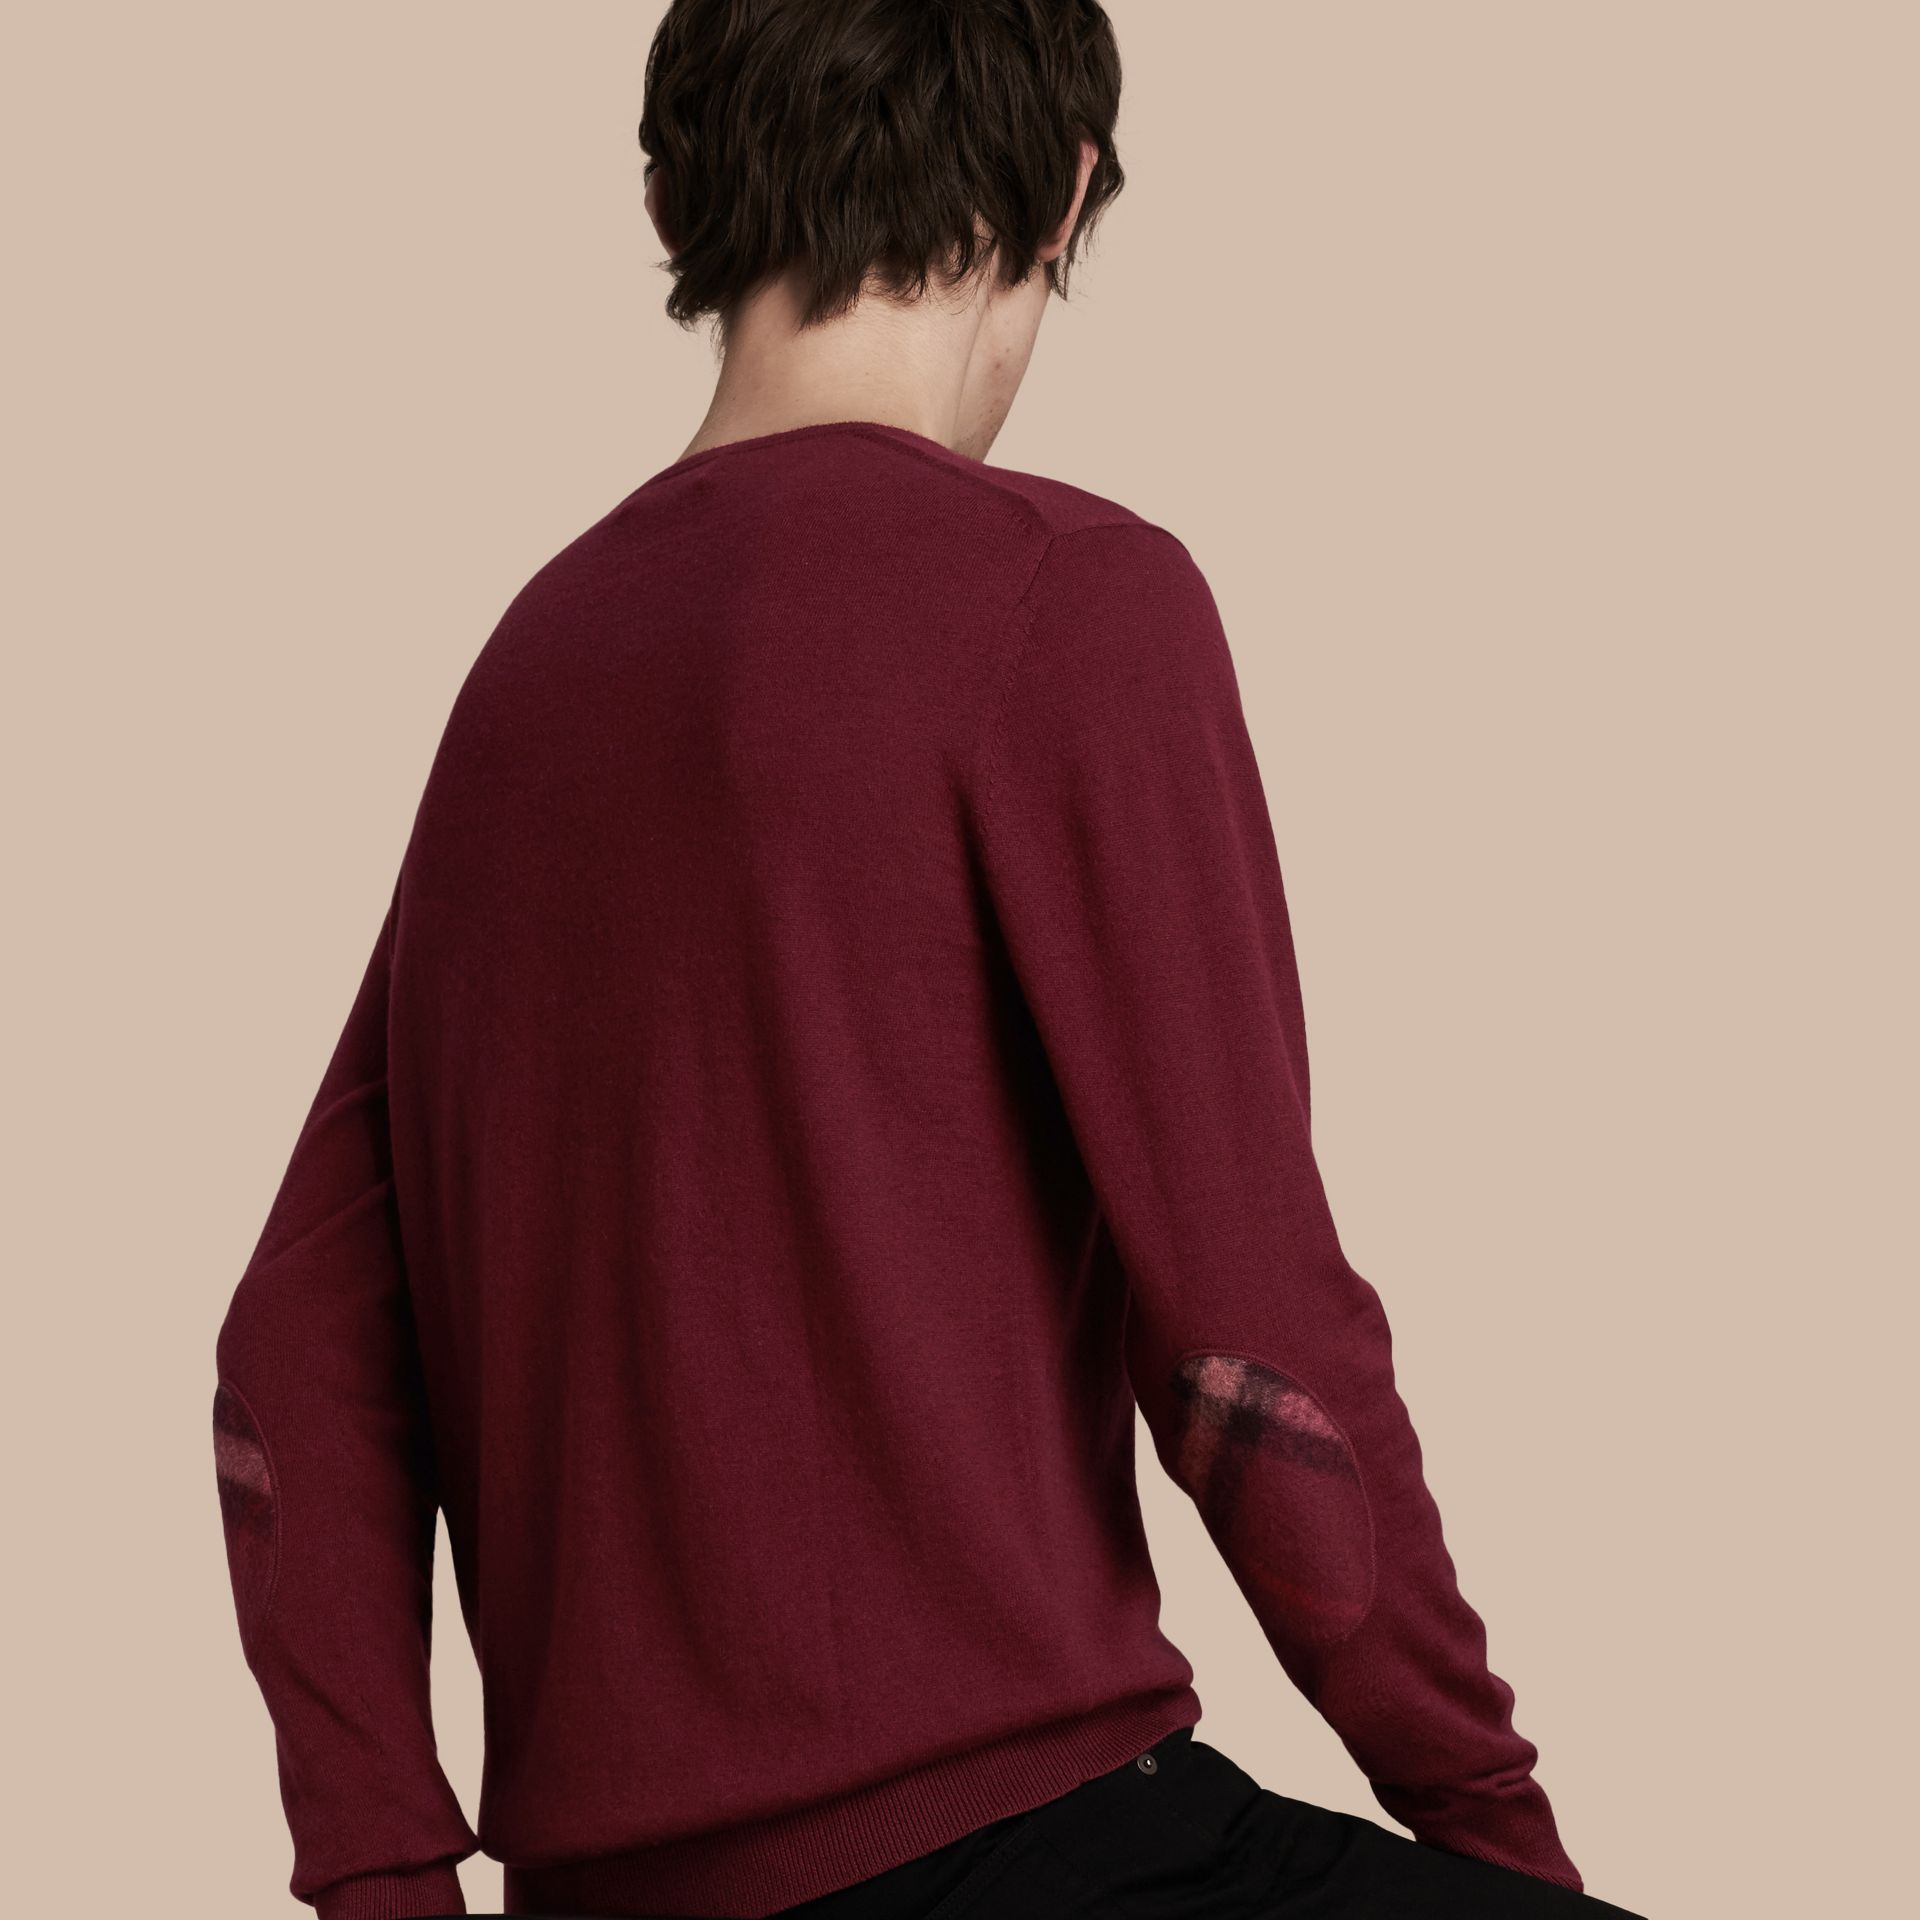 Claret Check Trim Cashmere Cotton Sweater Claret - gallery image 1